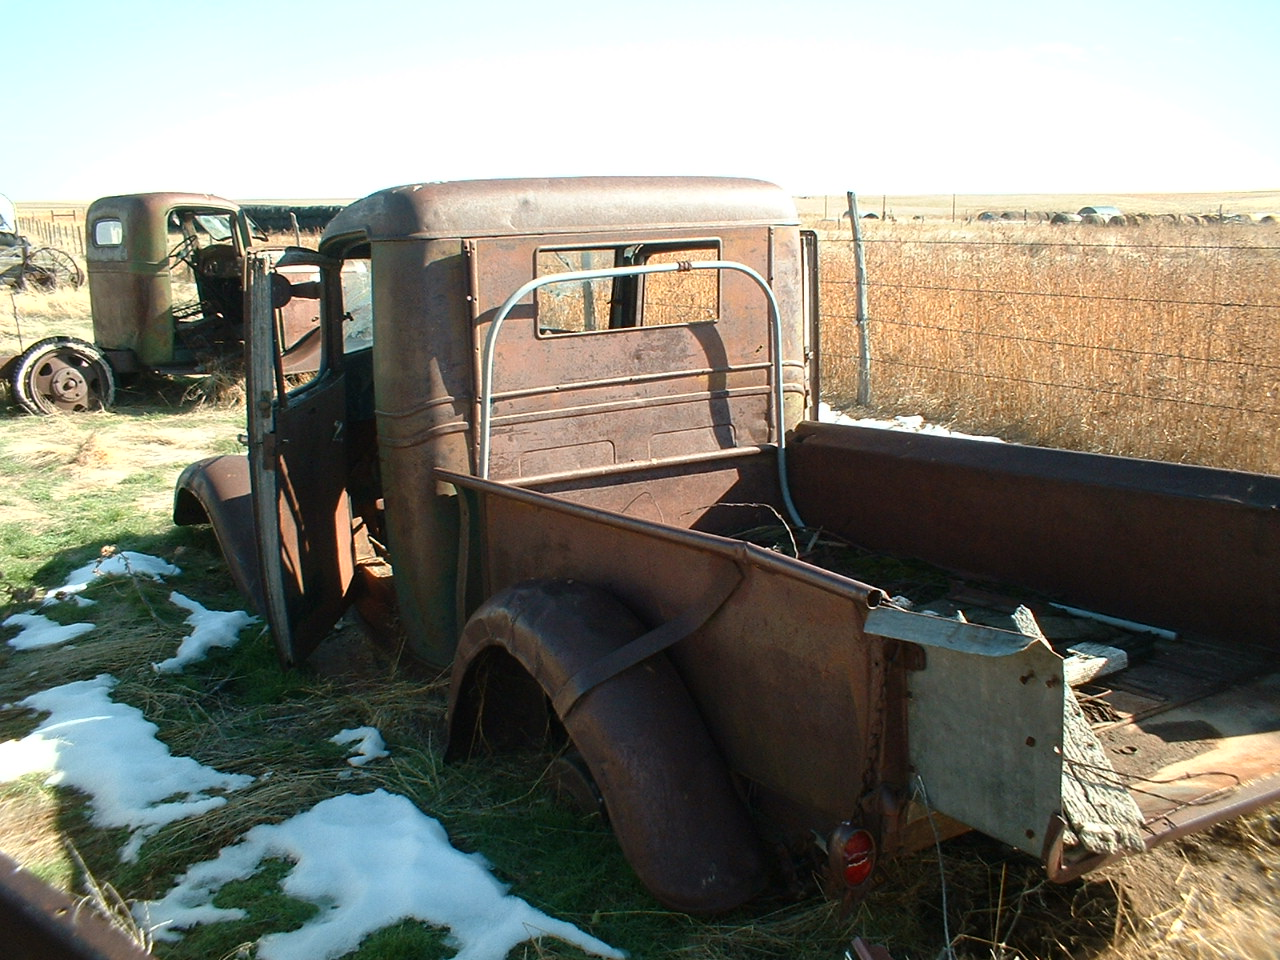 need price on a 1933 chevy pickup, not restored and a price